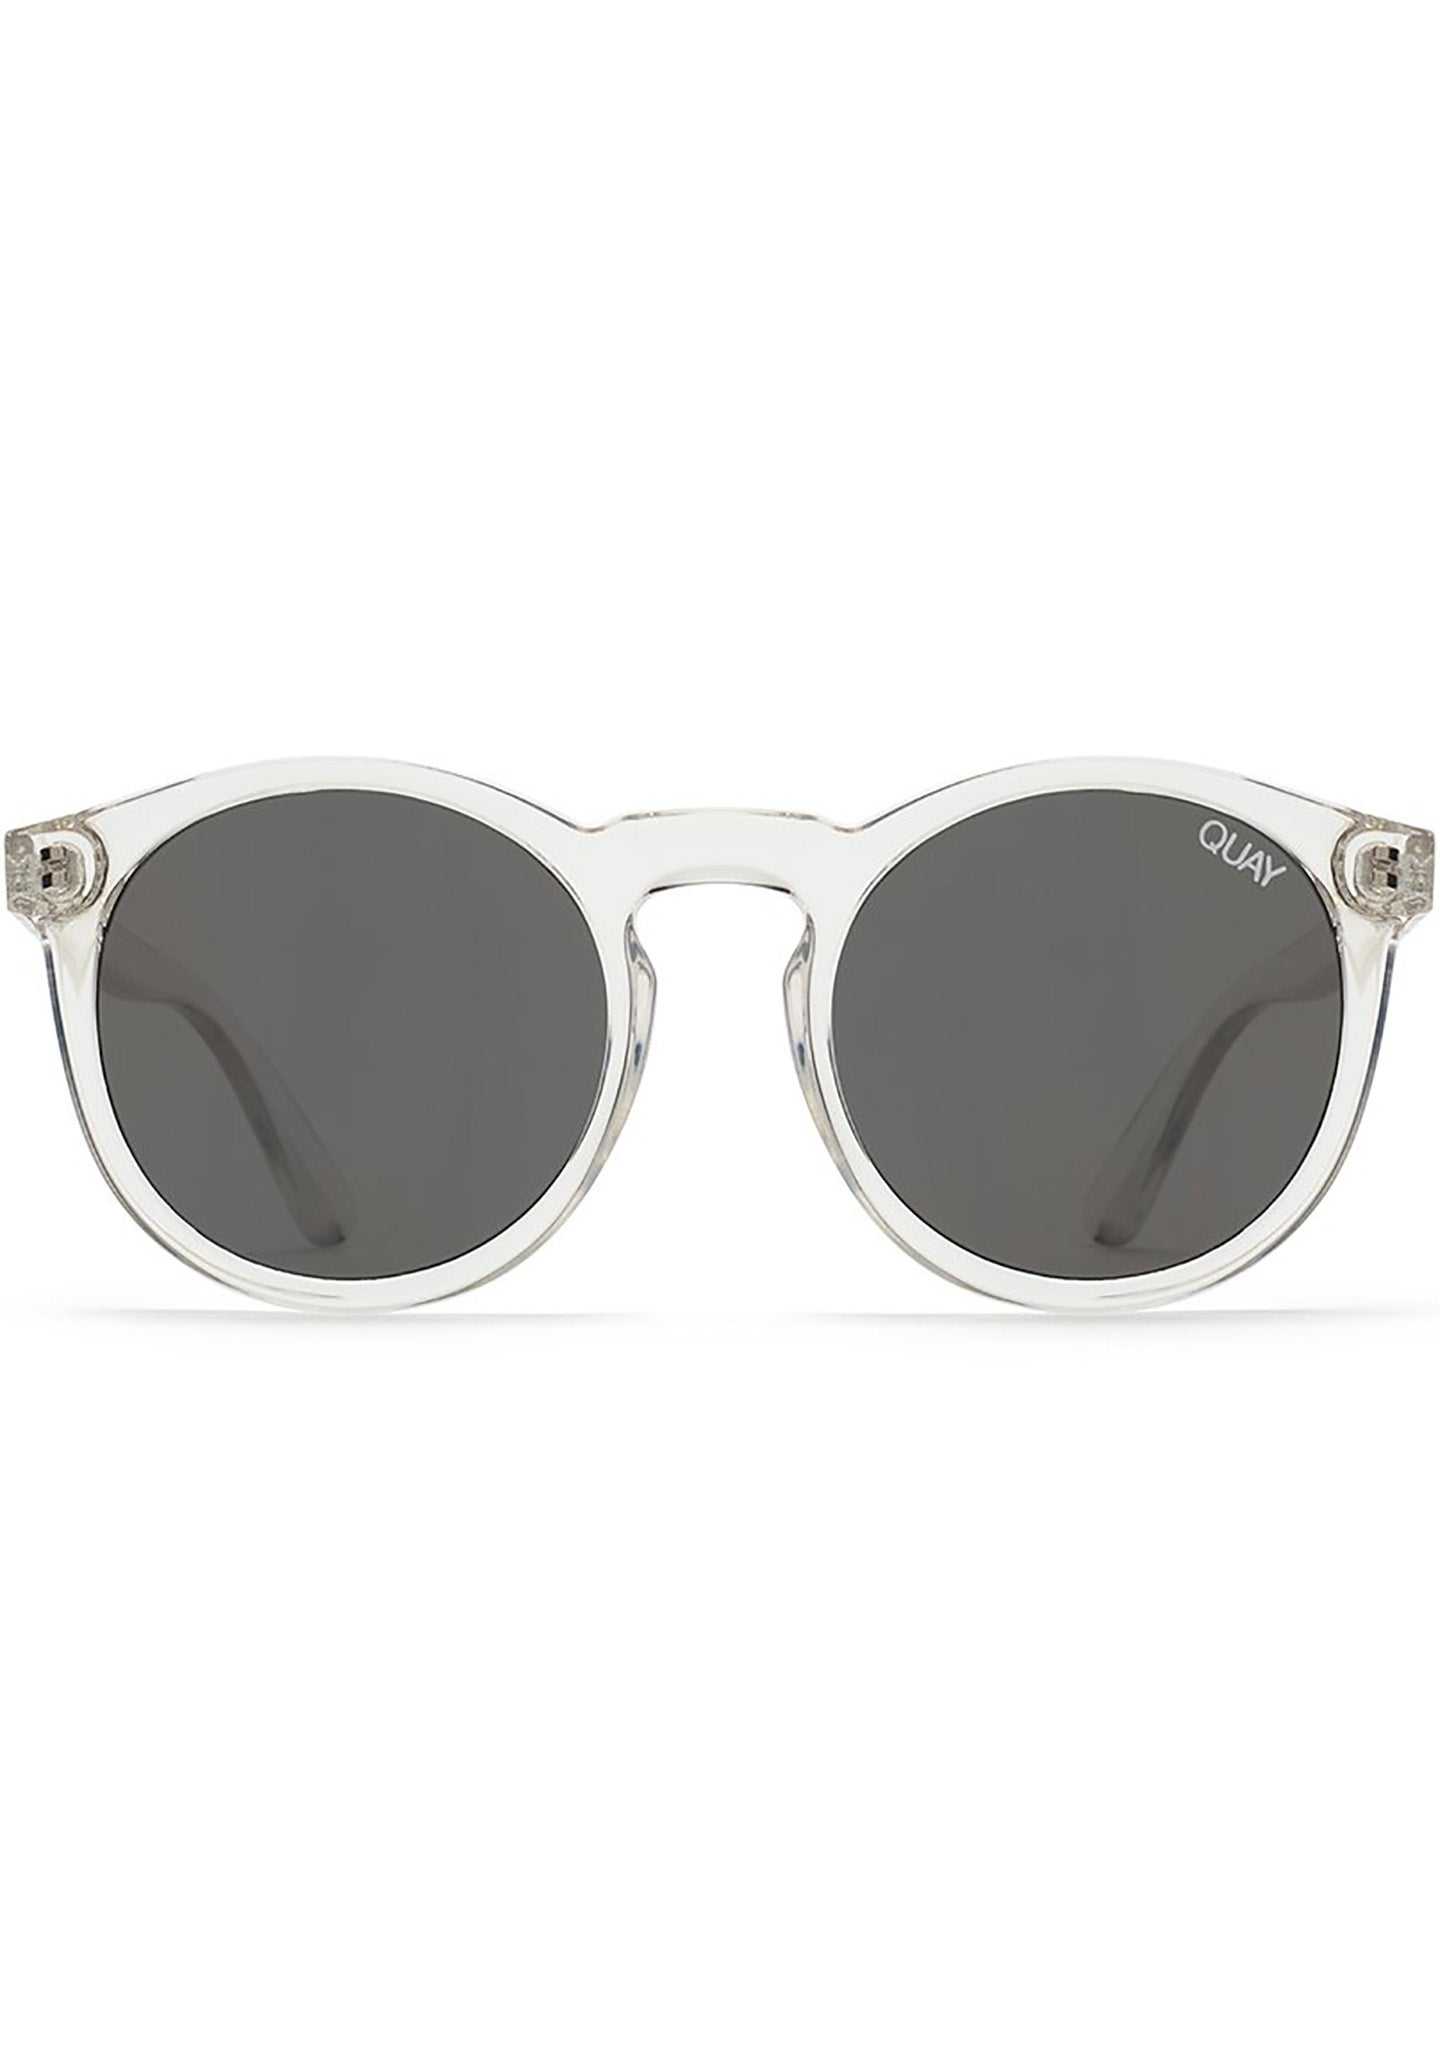 Kosha Comeback Sunglasses in Clear/Smoke